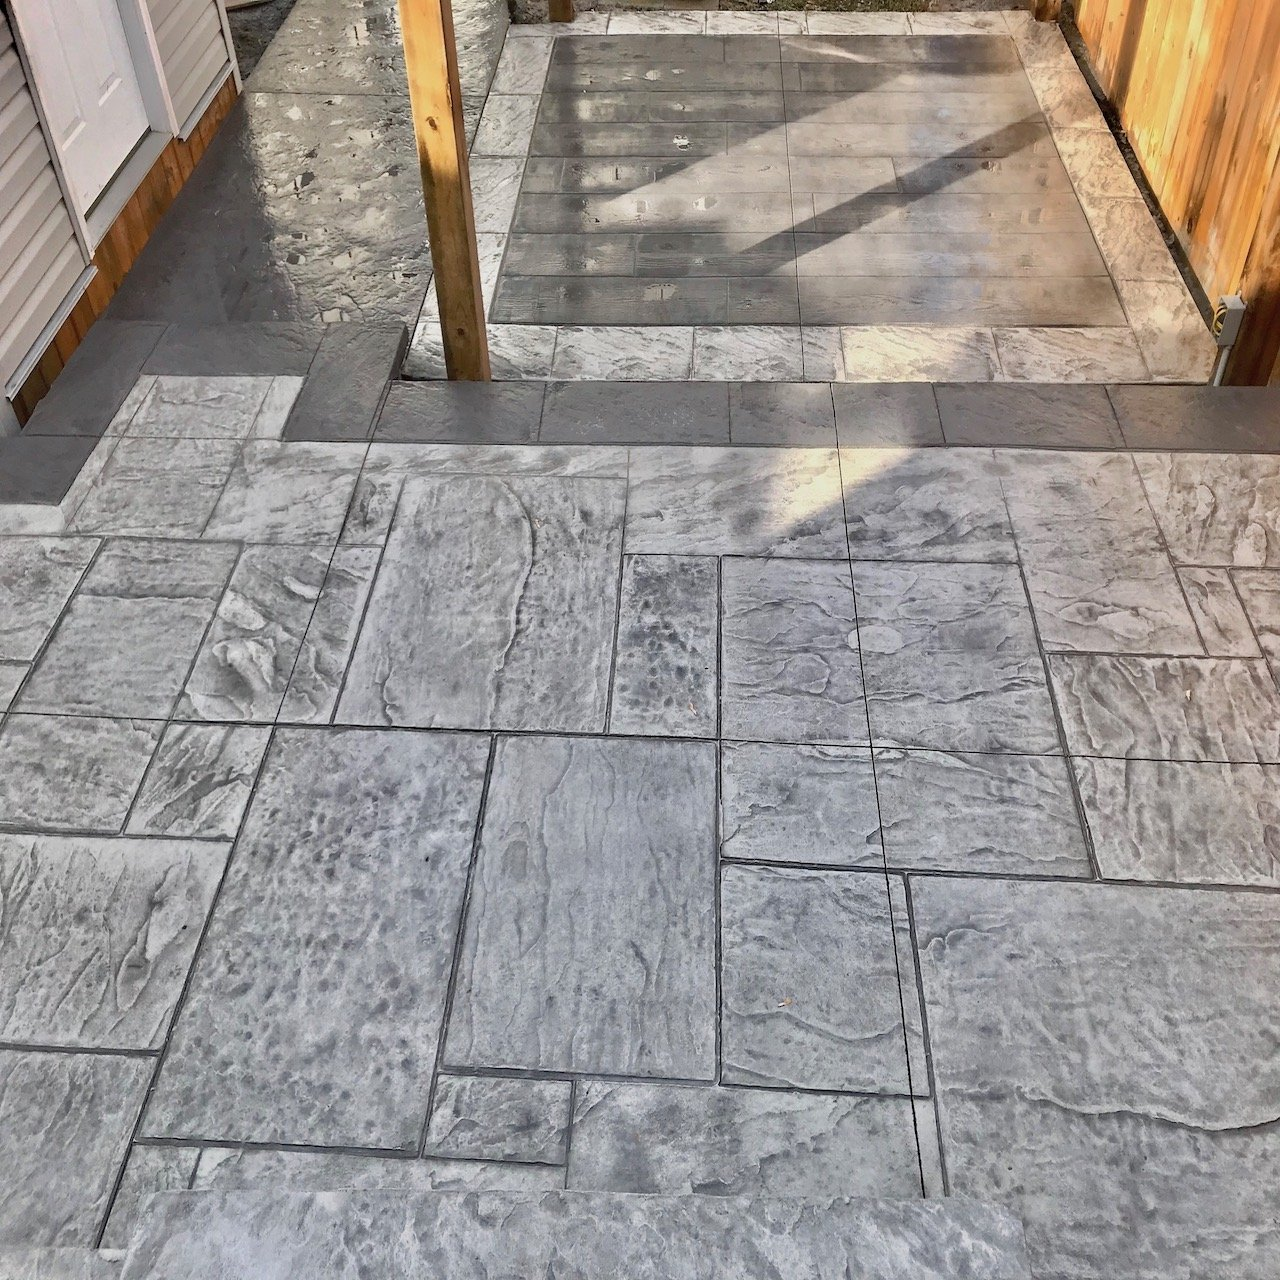 DecoMax Concrete - Concrete Patios Gallery - Stamped - 019DecoMax Concrete - Concrete Patios Gallery - Stamped - 019DecoMax Concrete - Concrete Patios Gallery - Stamped - 018